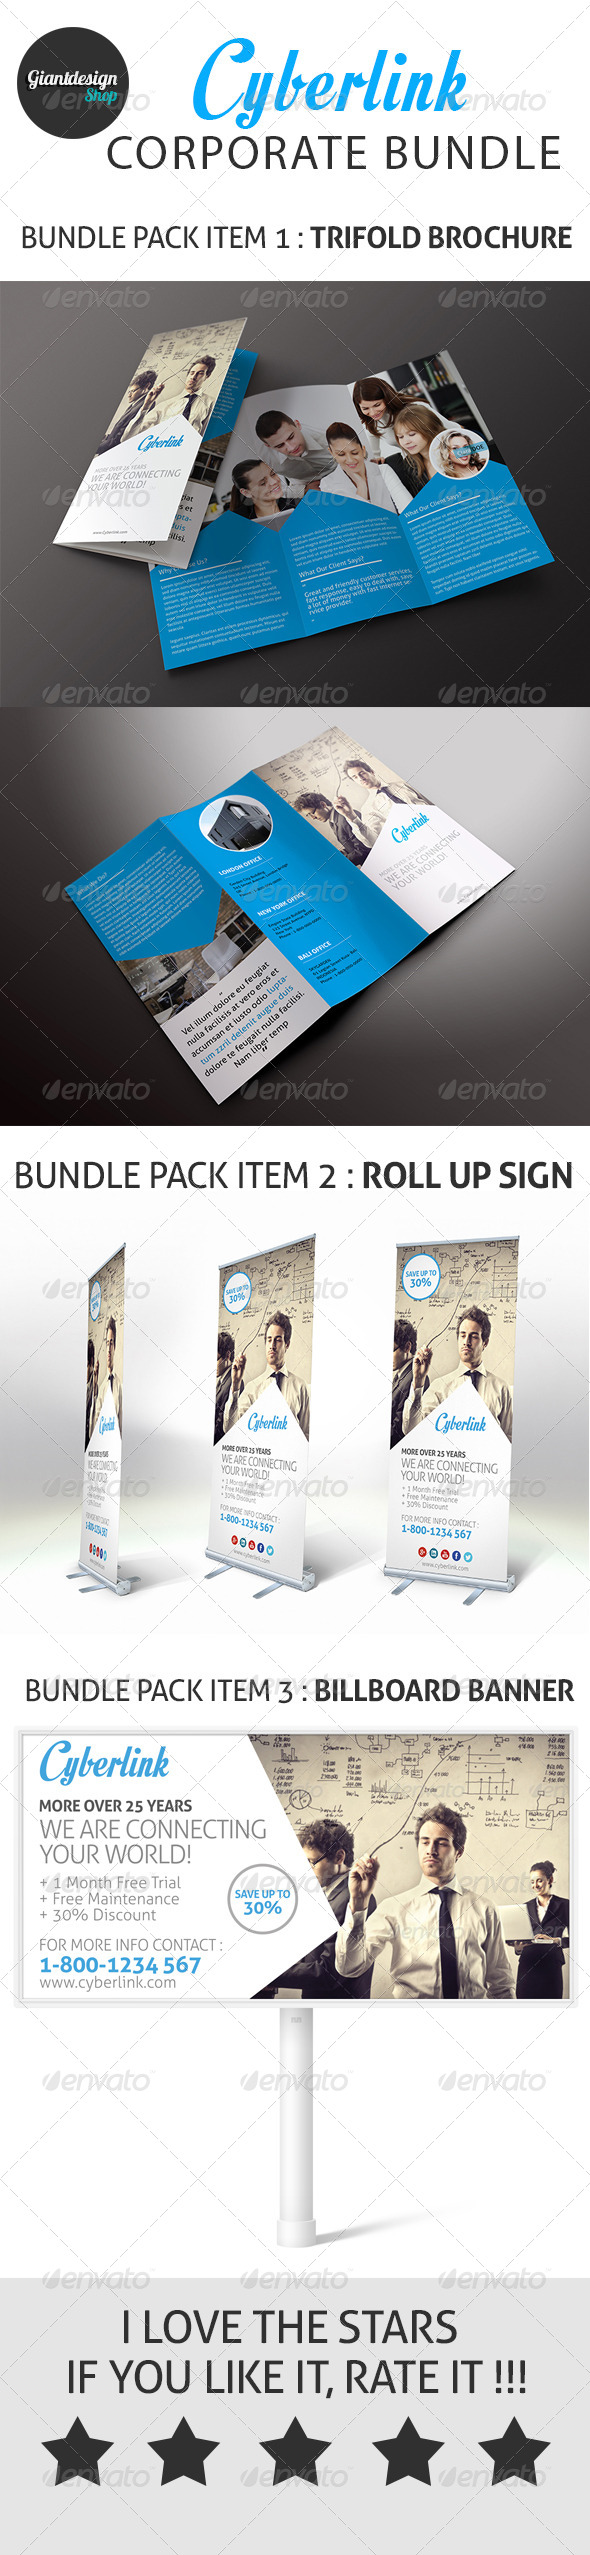 GraphicRiver Cyberlink Corporate Bundle 8226142